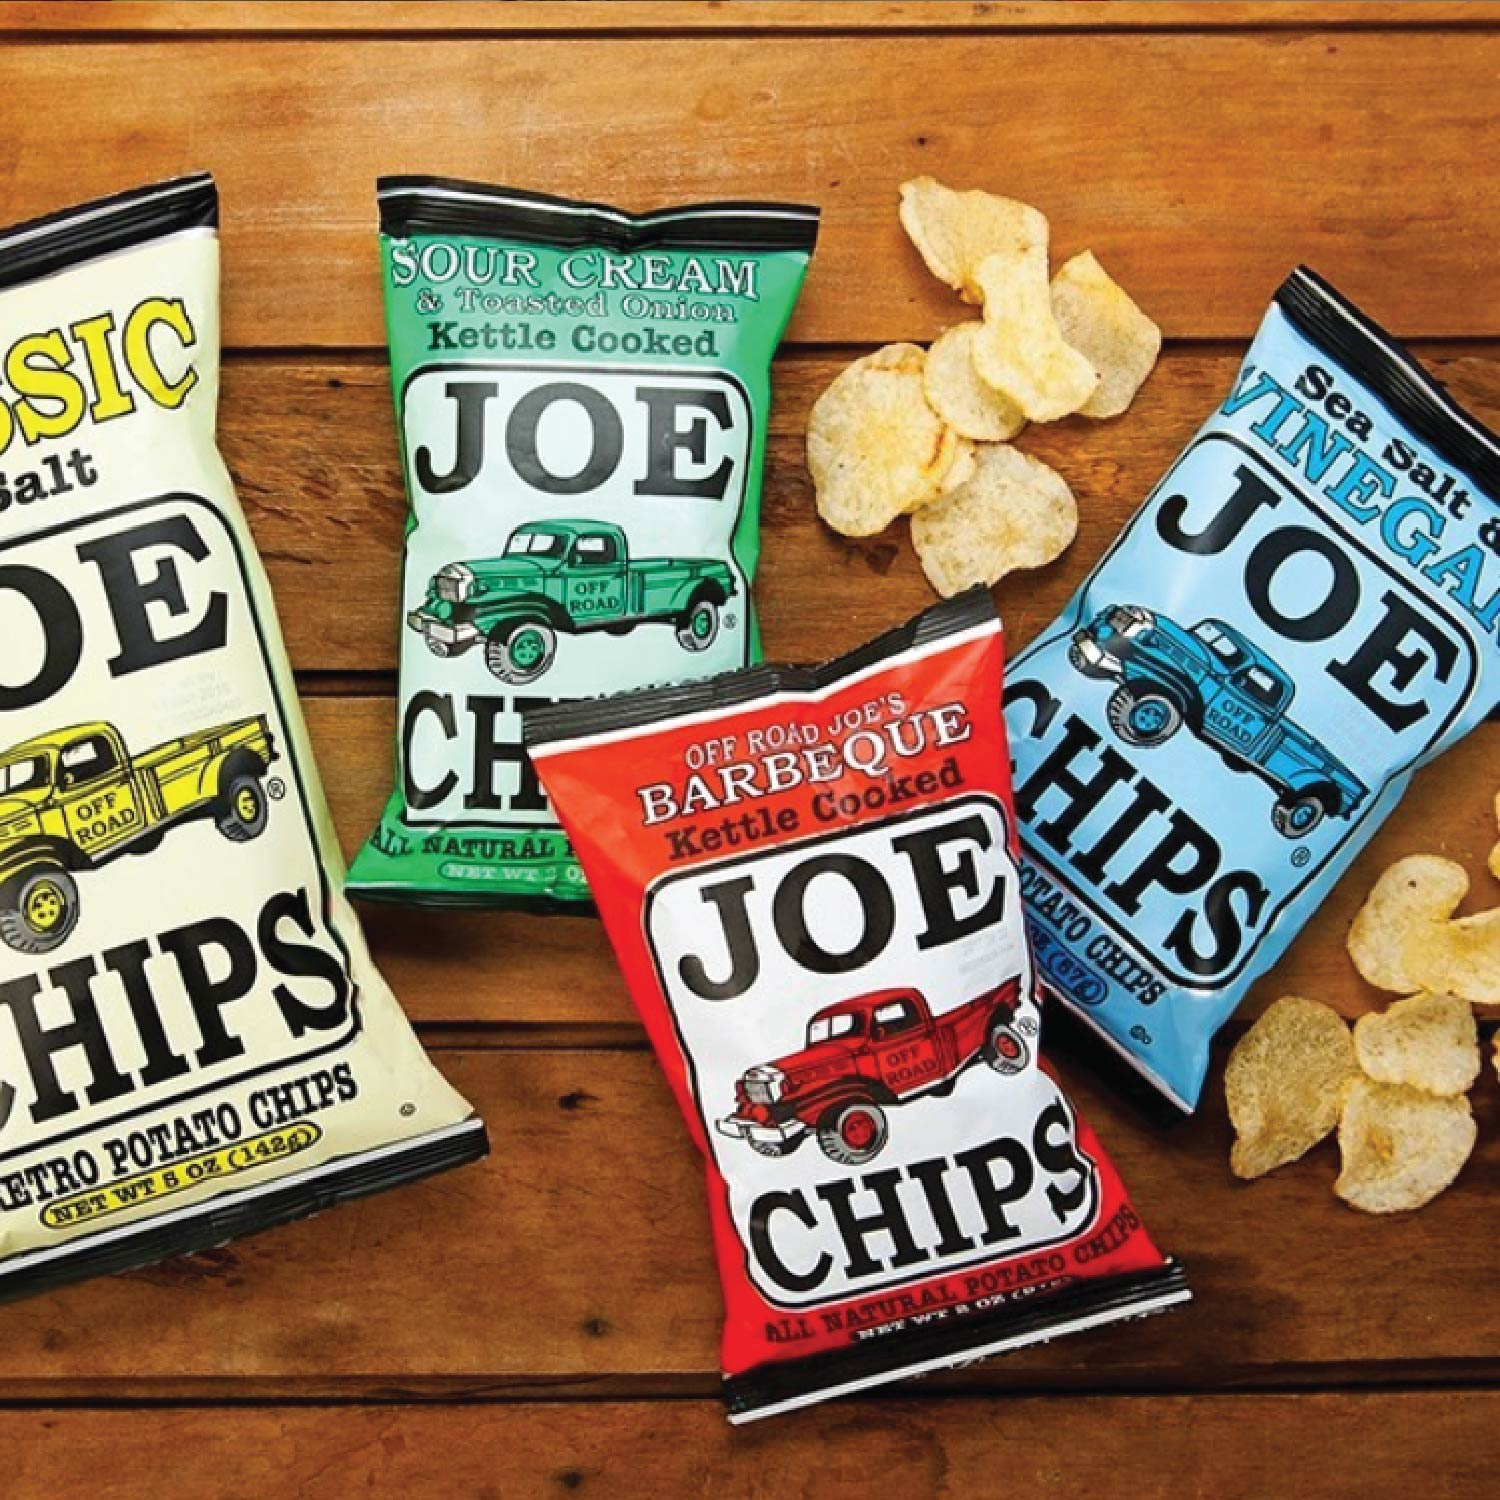 2 oz JOE CHIPS  (8 PACK)